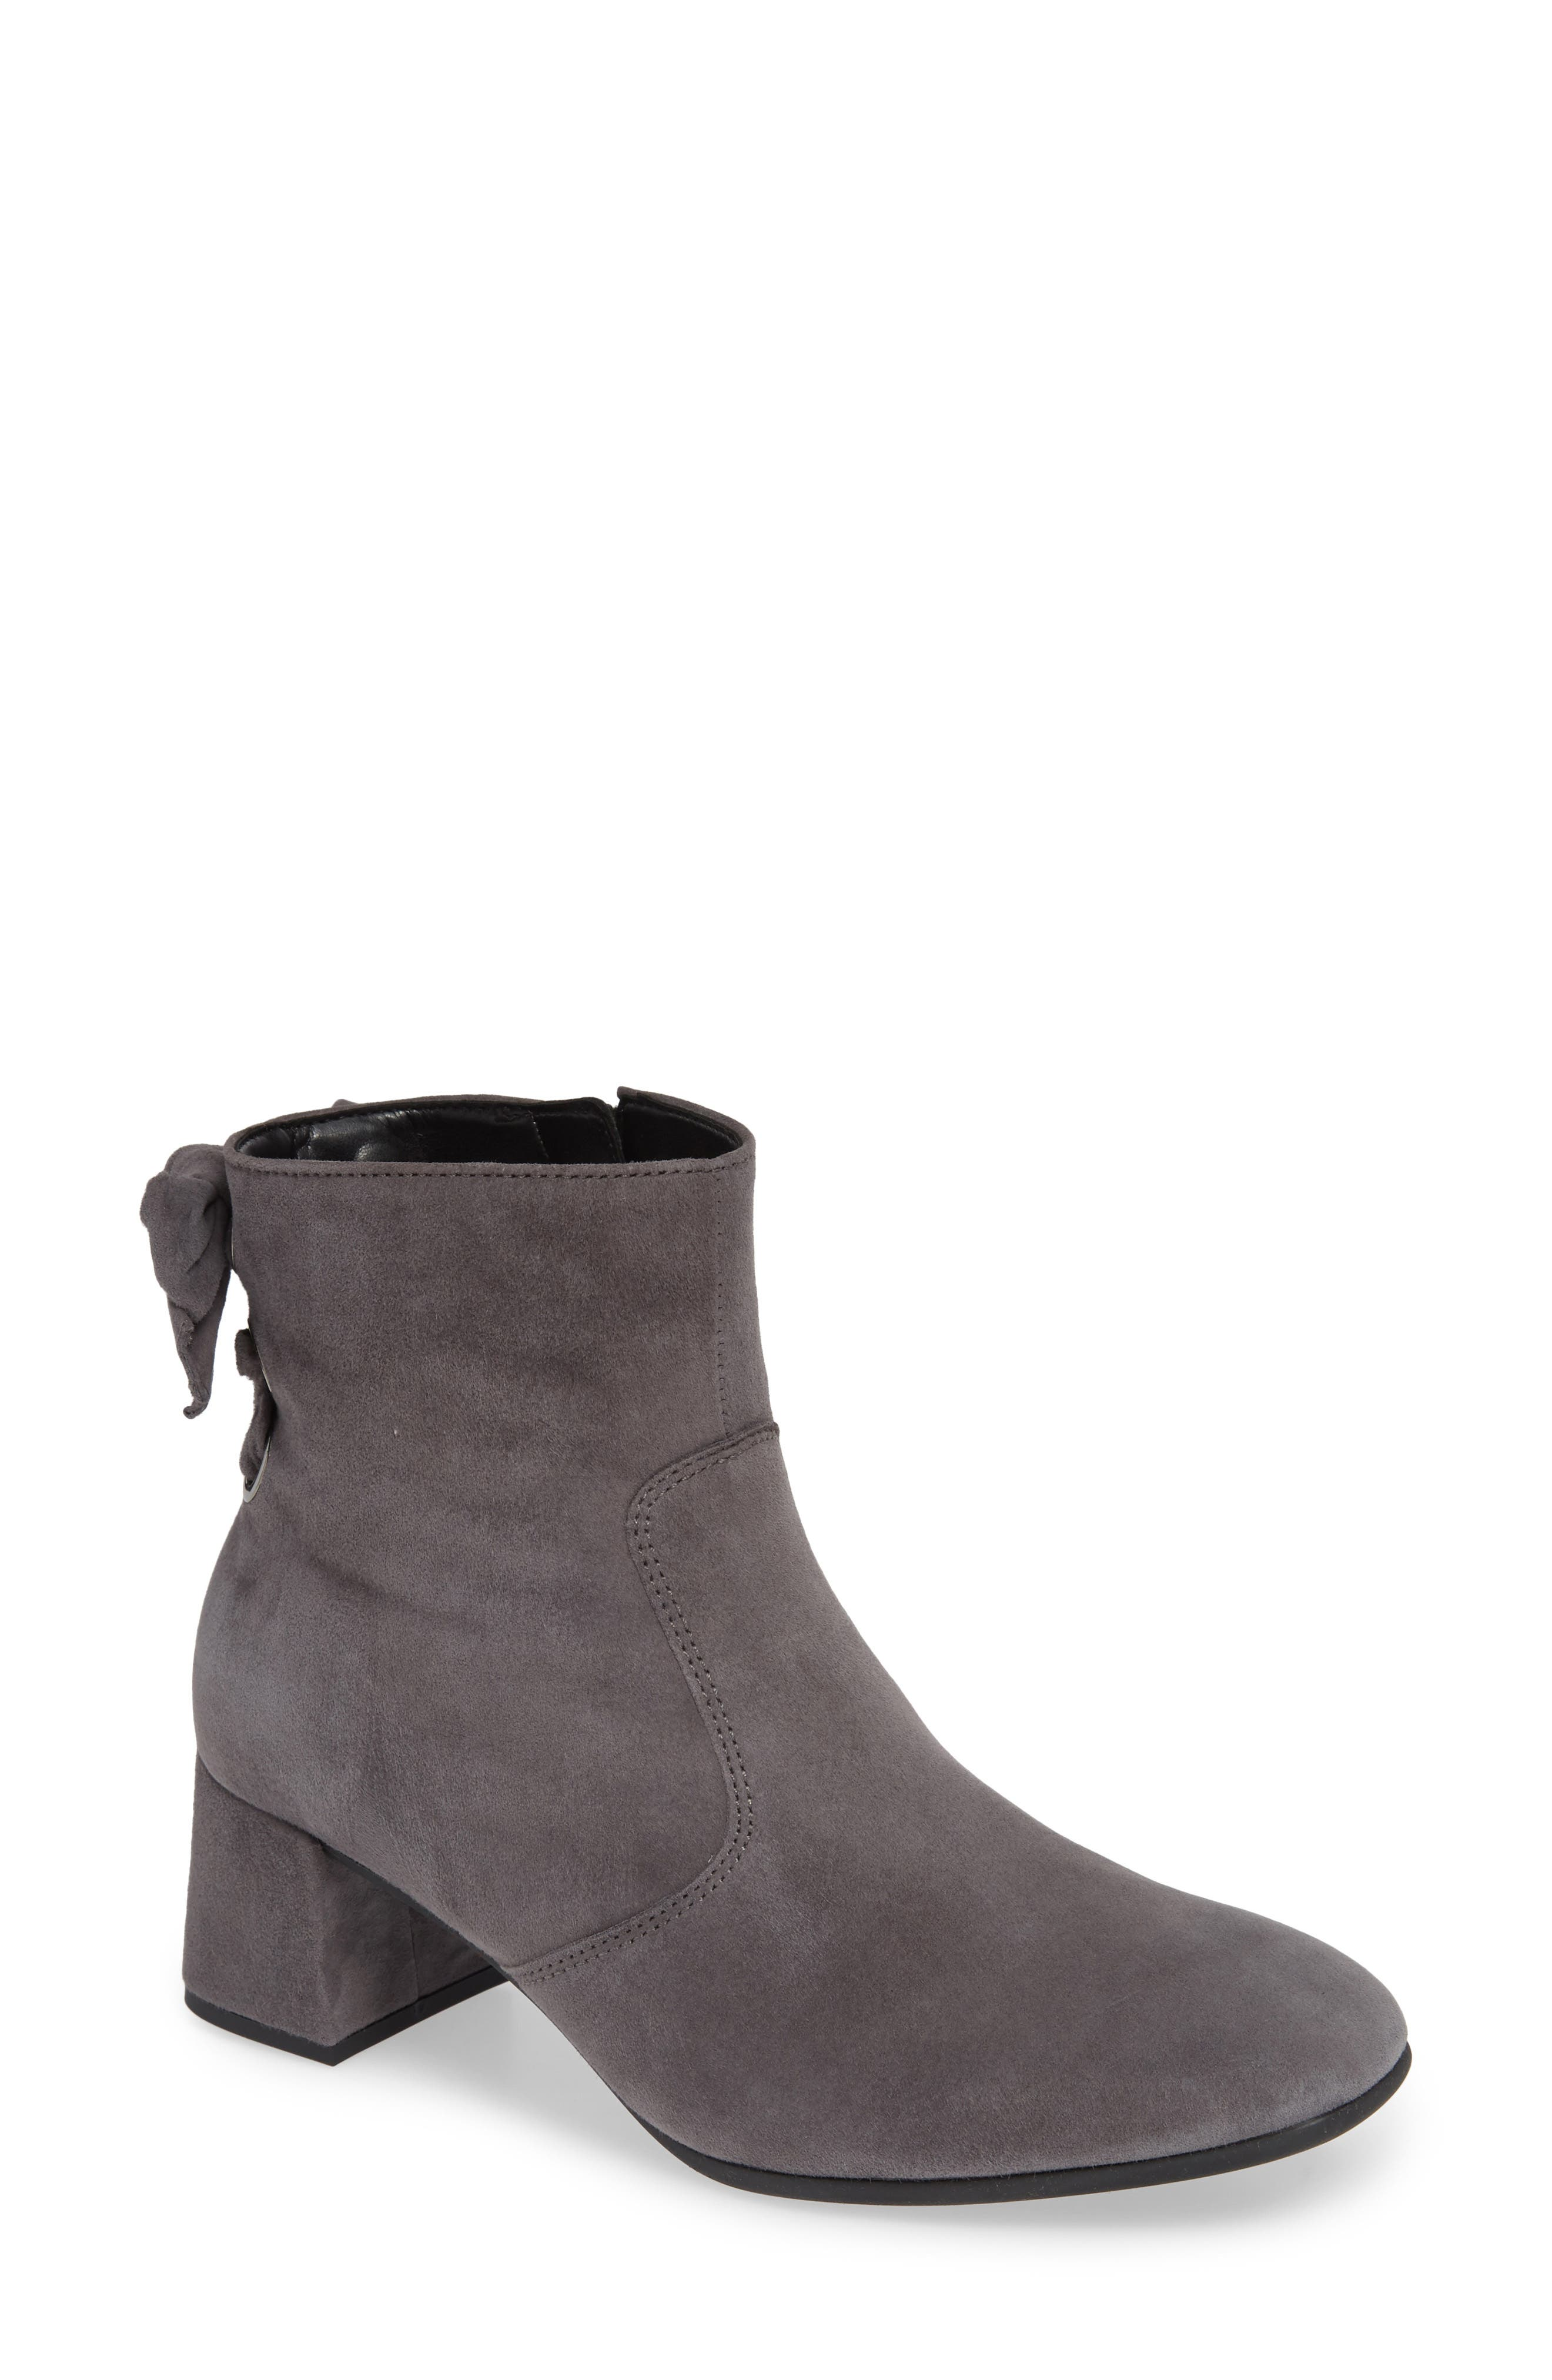 Gabor Bow Back Bootie, Grey